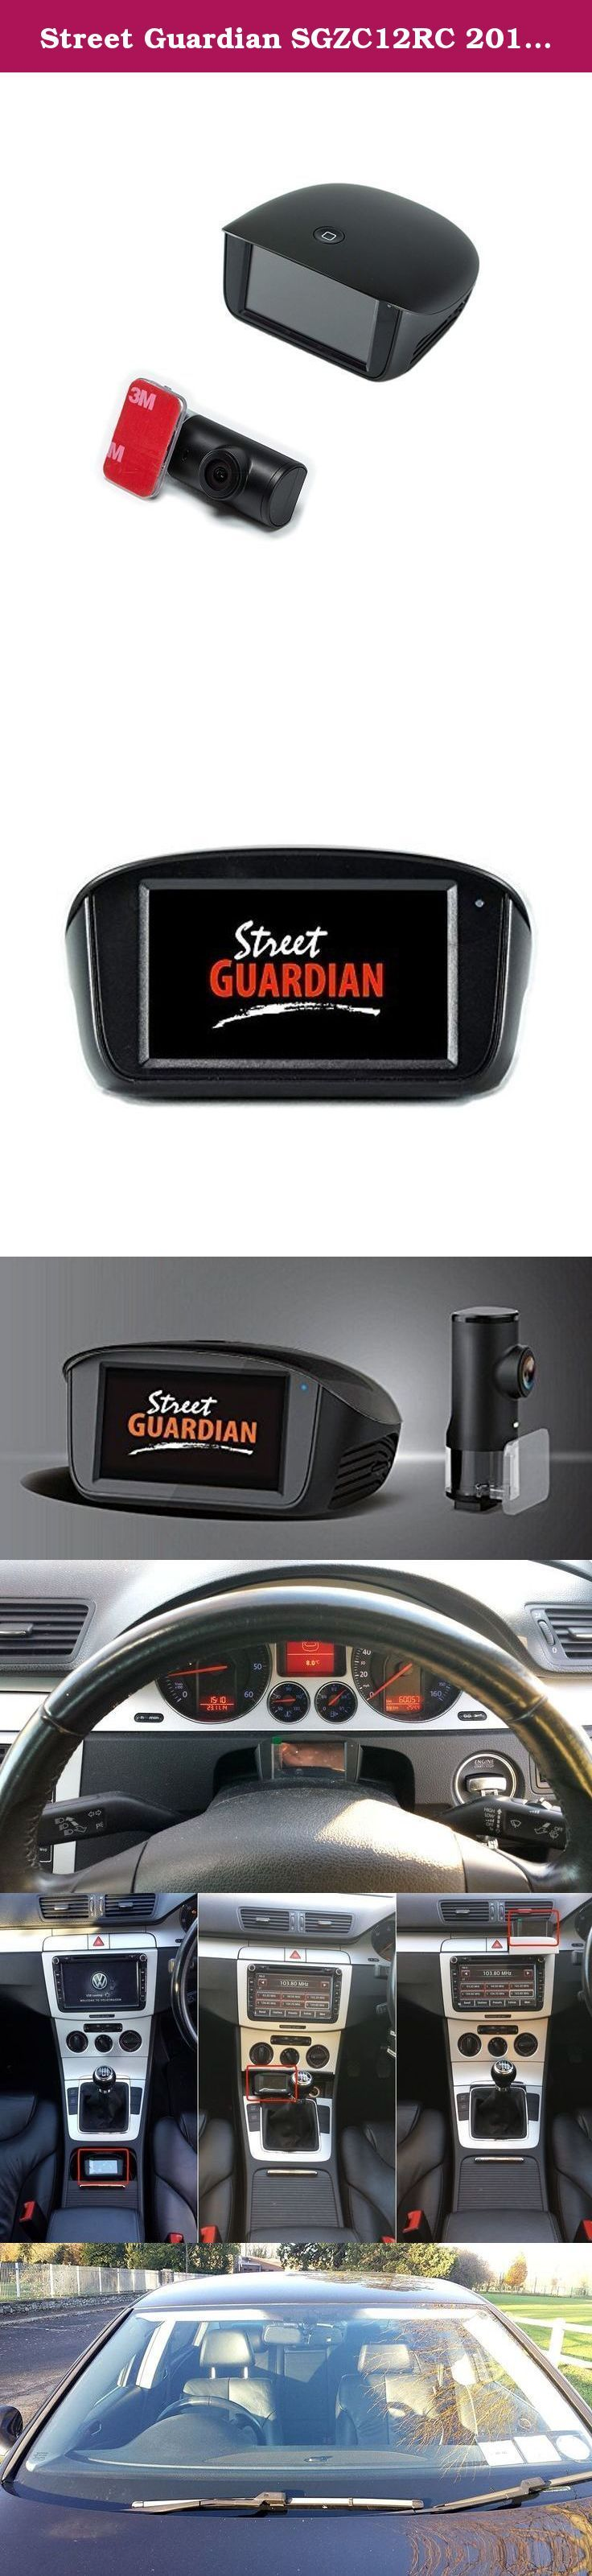 Street Guardian SGZC12RC 2016 v2 edition Remote Camera DashCam with Sony Exmor IMX322 CMOS Sensor 1080P WDR Night Performance High Heat Supercapacitor. treet Guardian SGZC12RC 2016 v2 edition Remote Camera DashCam with Sony Exmor IMX322 CMOS Sensor 1080P WDR Night Performance High Heat Supercapacitor.